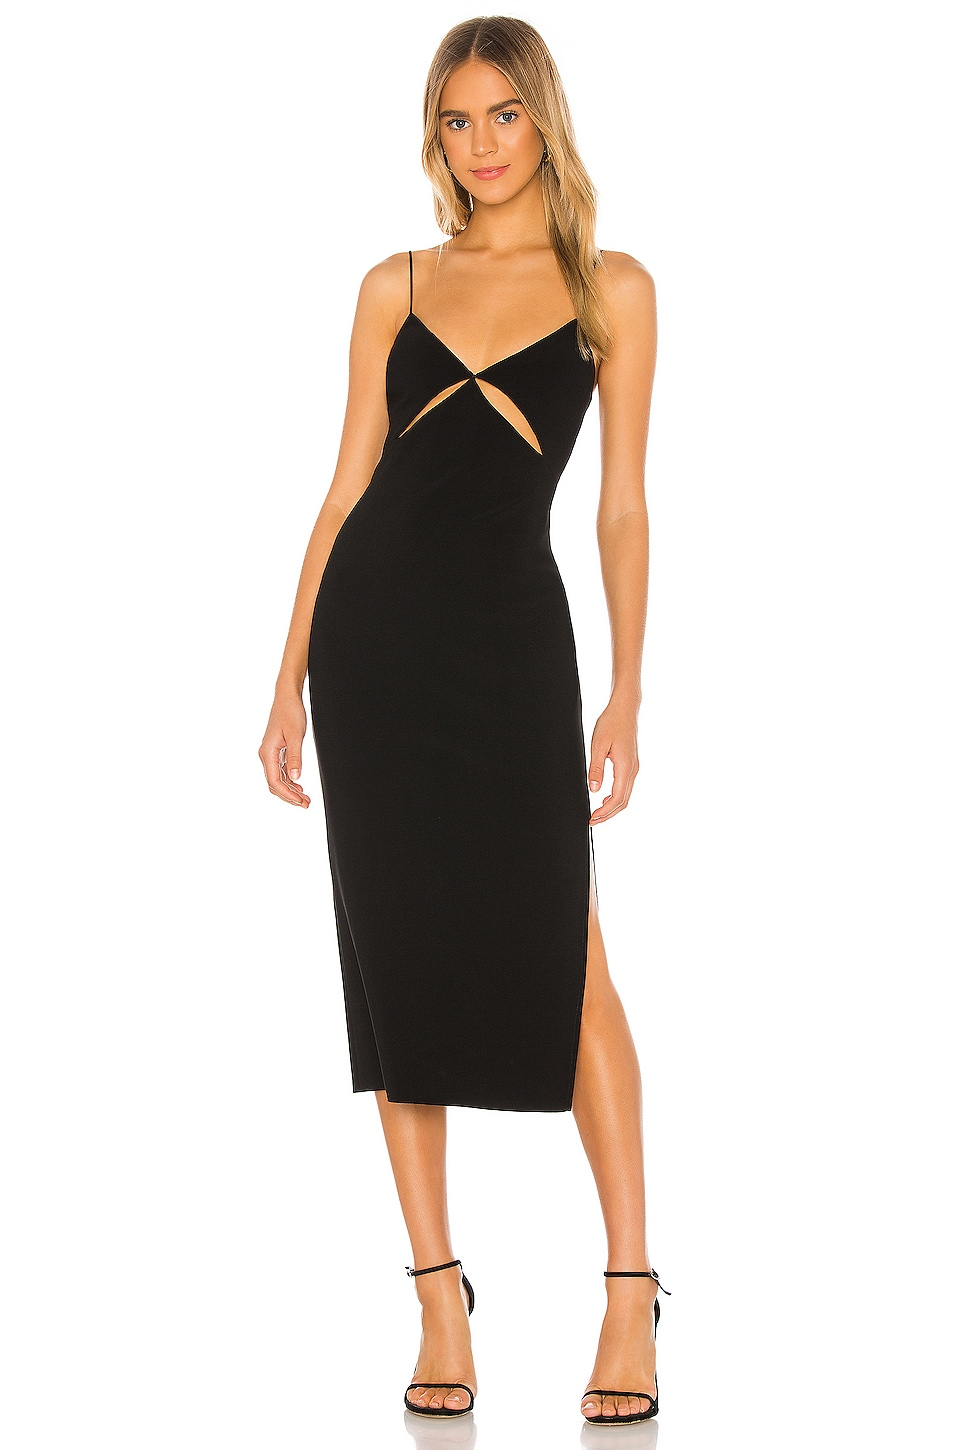 Emerald Avenue Midi Dress             BEC&BRIDGE                                                                                                       CA$ 399.73 10